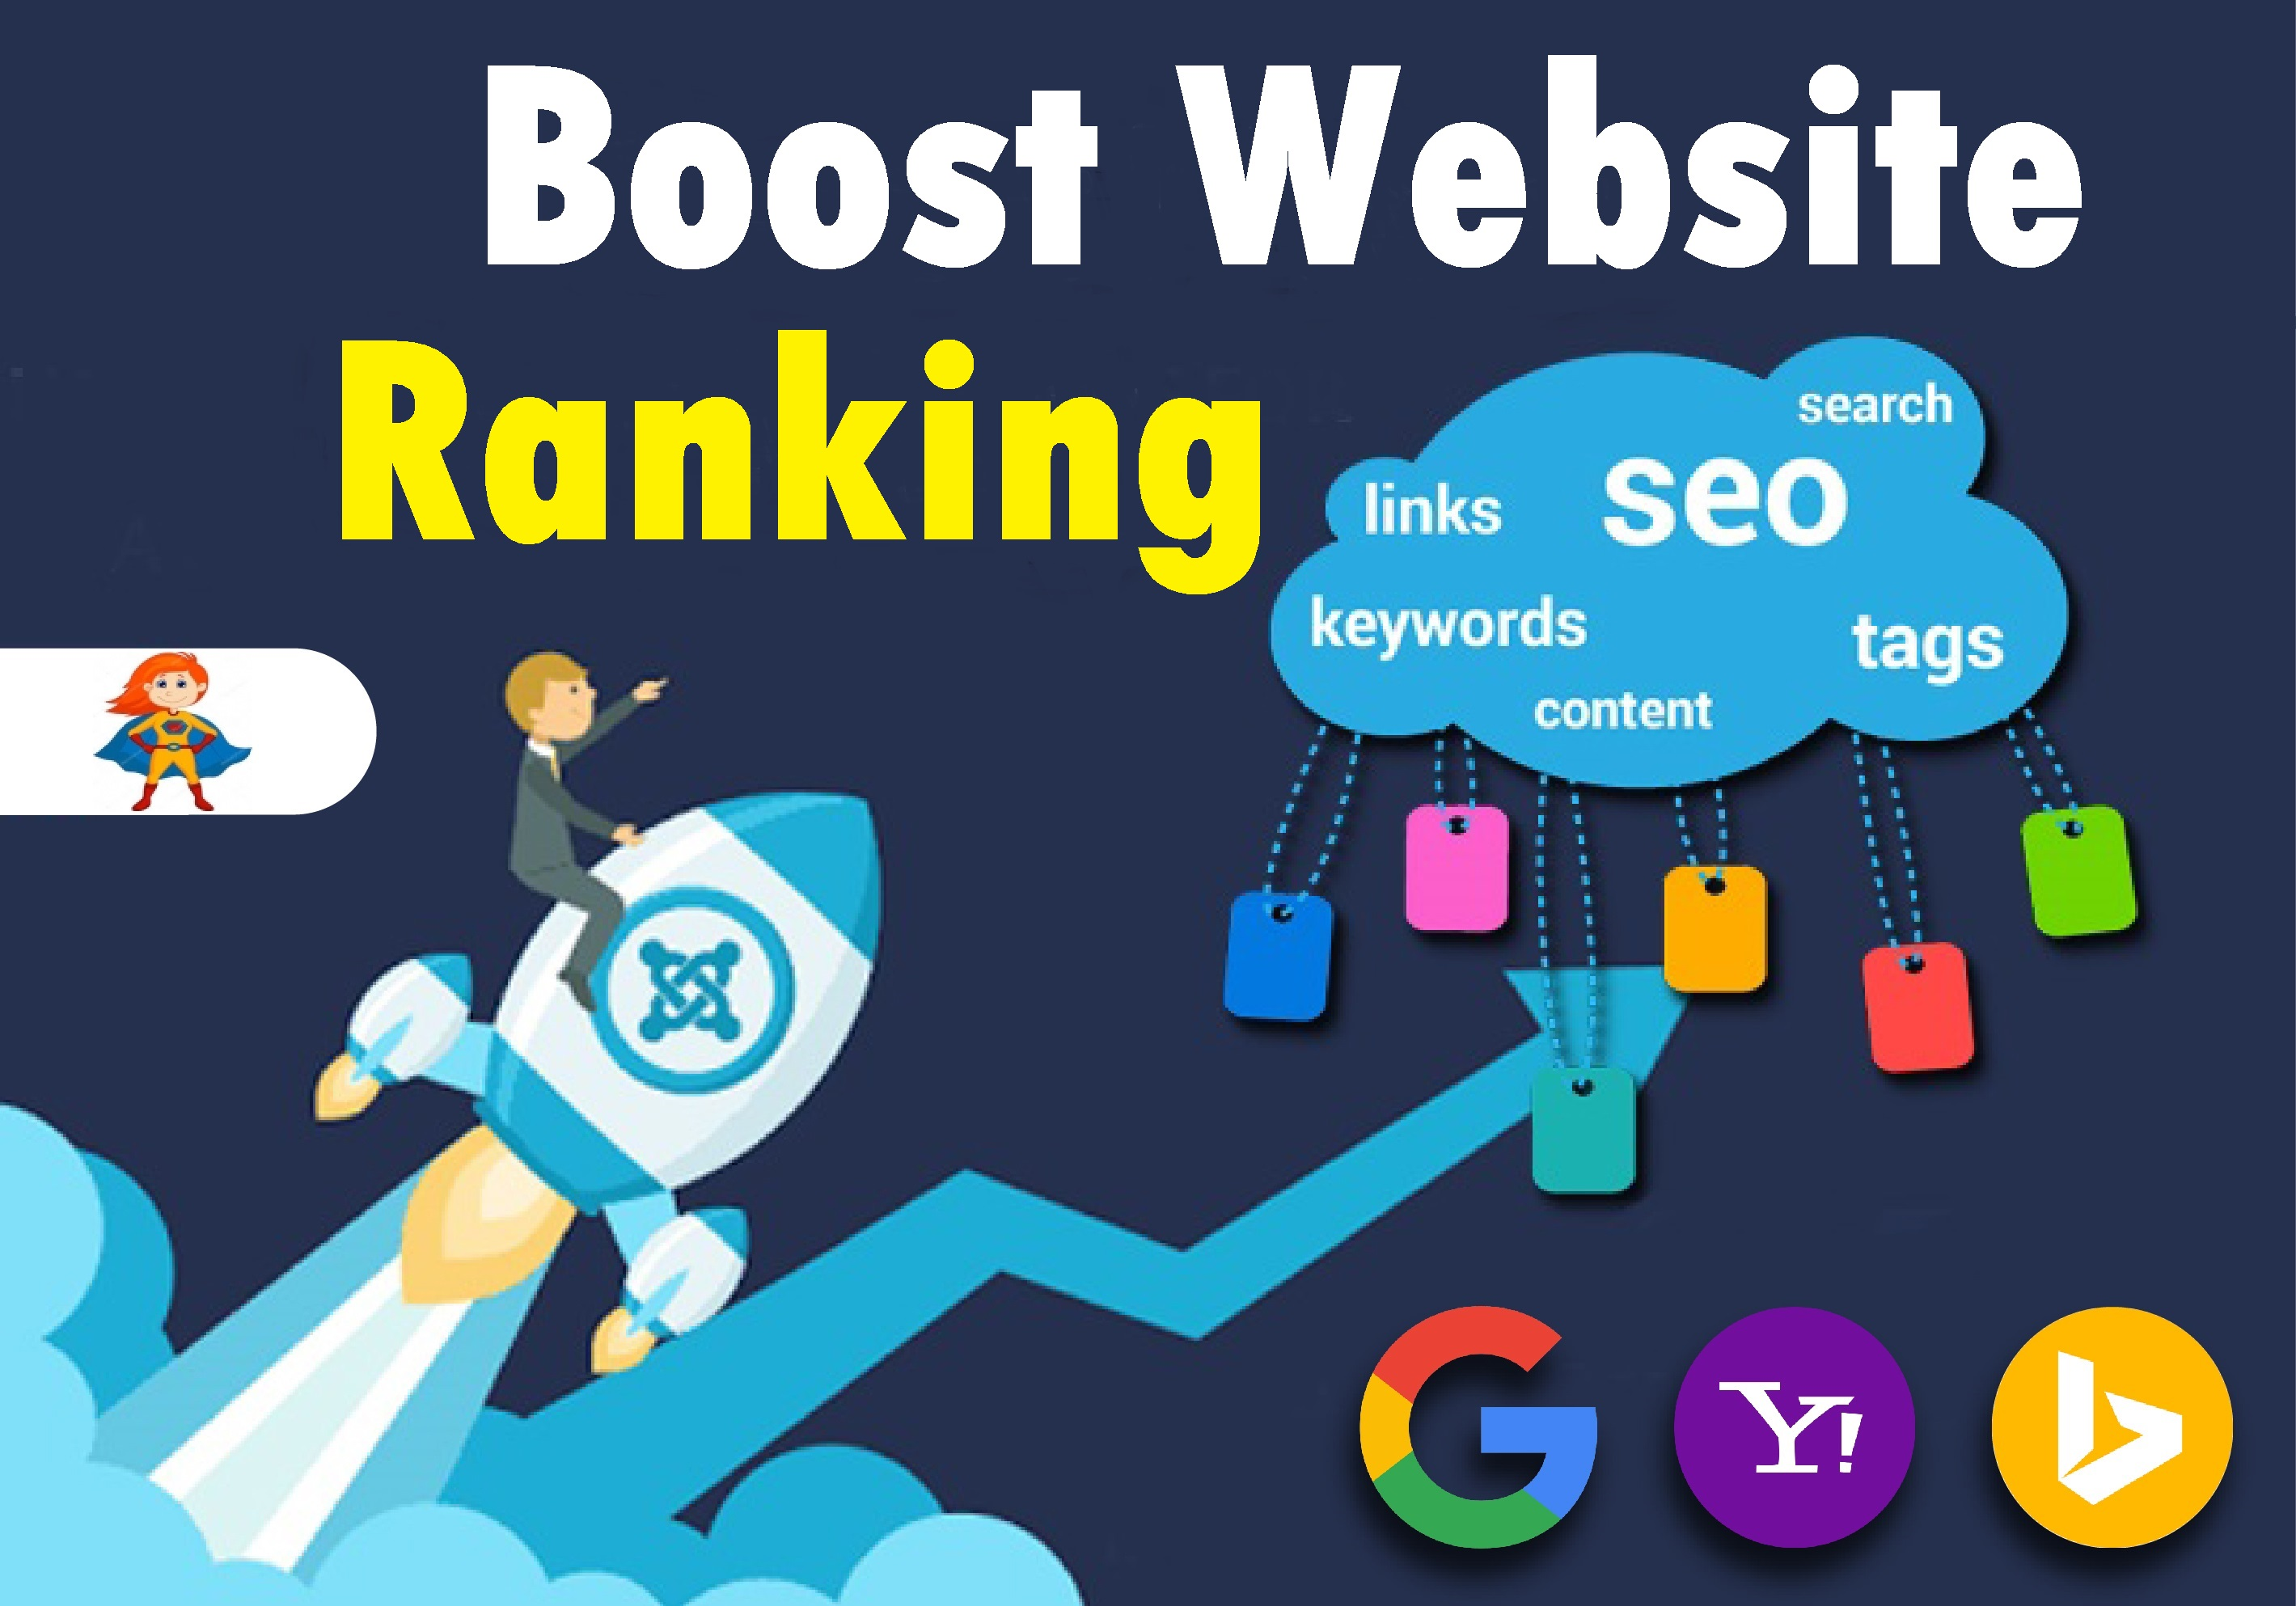 Boost Your Google Ranking by 400+ Massive SEO Backlinks With Manual High Authority and Trusted Links